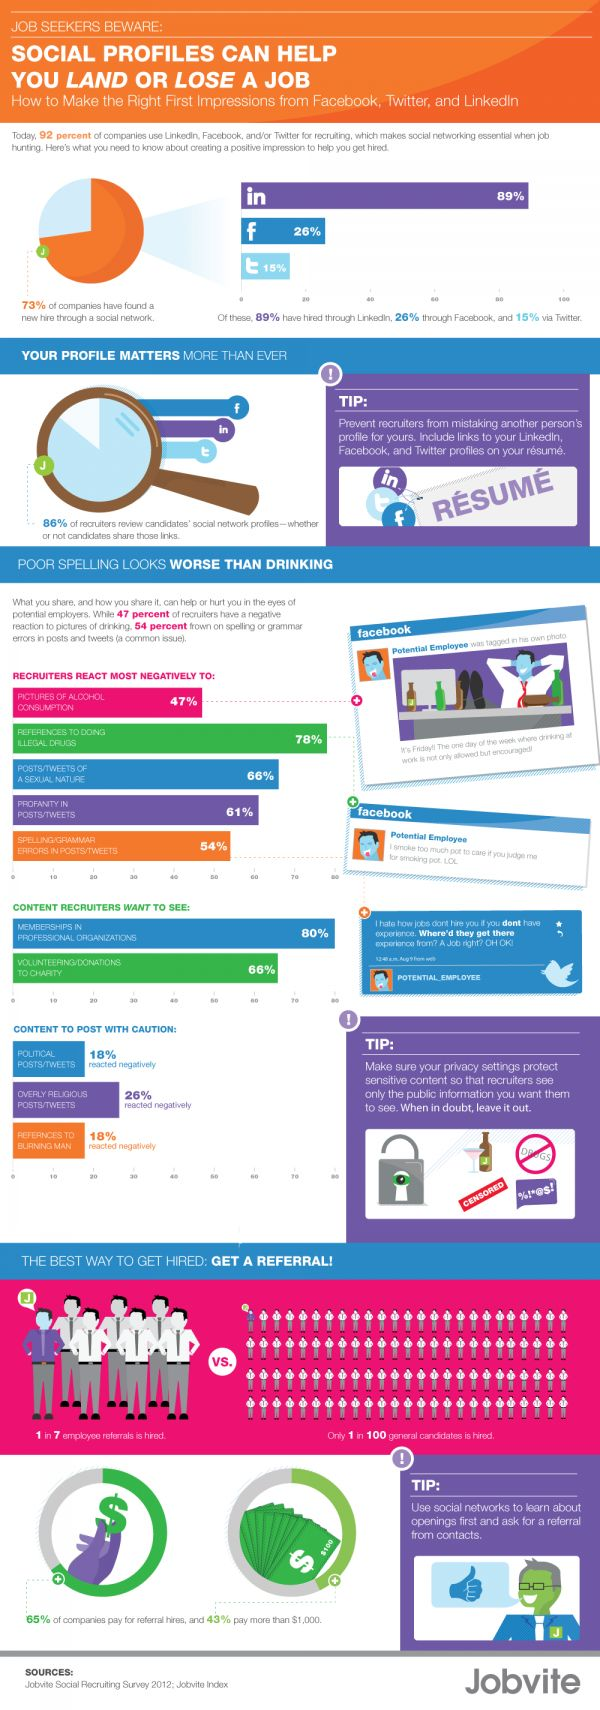 Social Media Profiles: How they can help you land or lose a job.